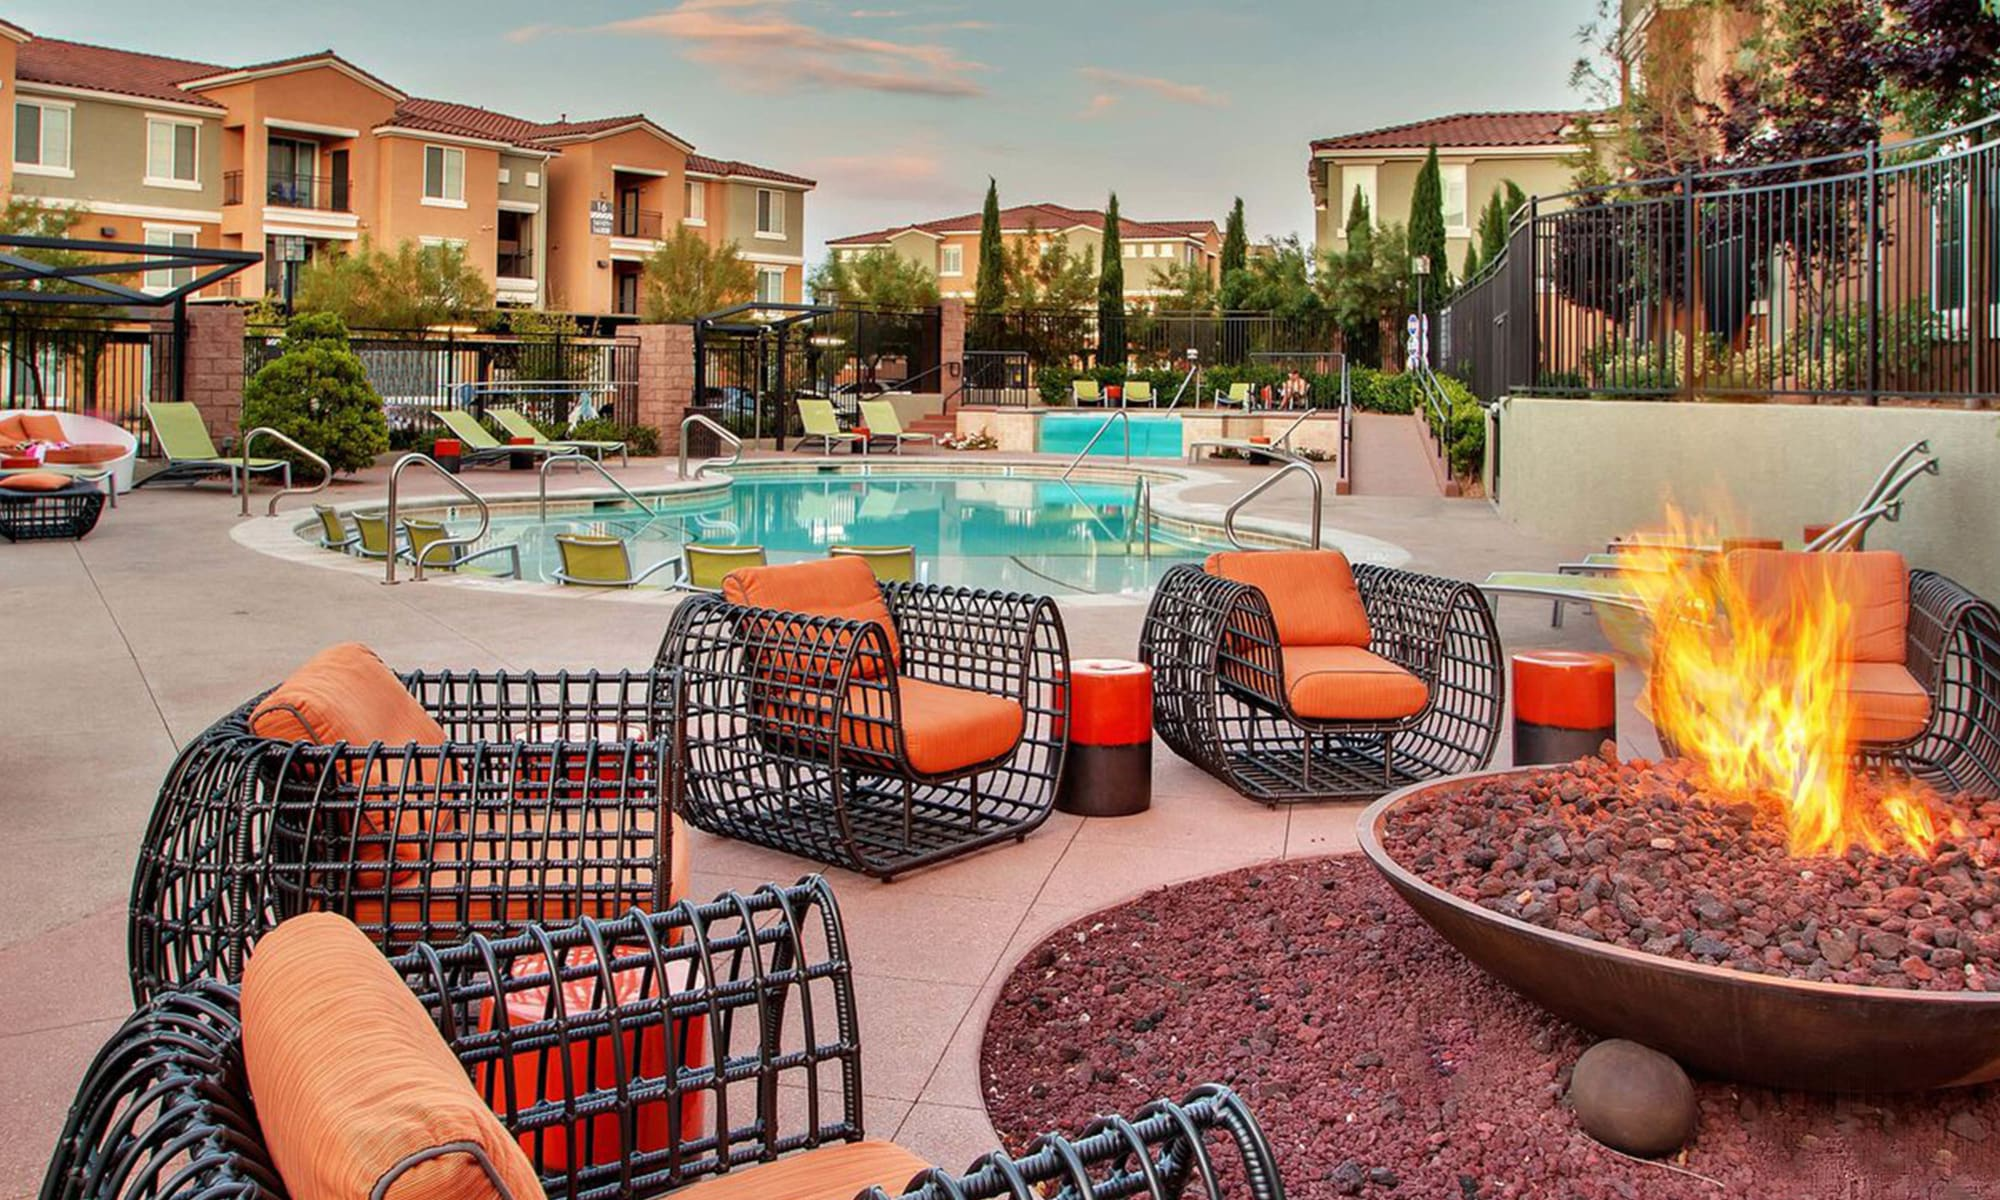 Our Apartments in Henderson, Nevada offer a Swimming Pool & Outdoor Fire Pit